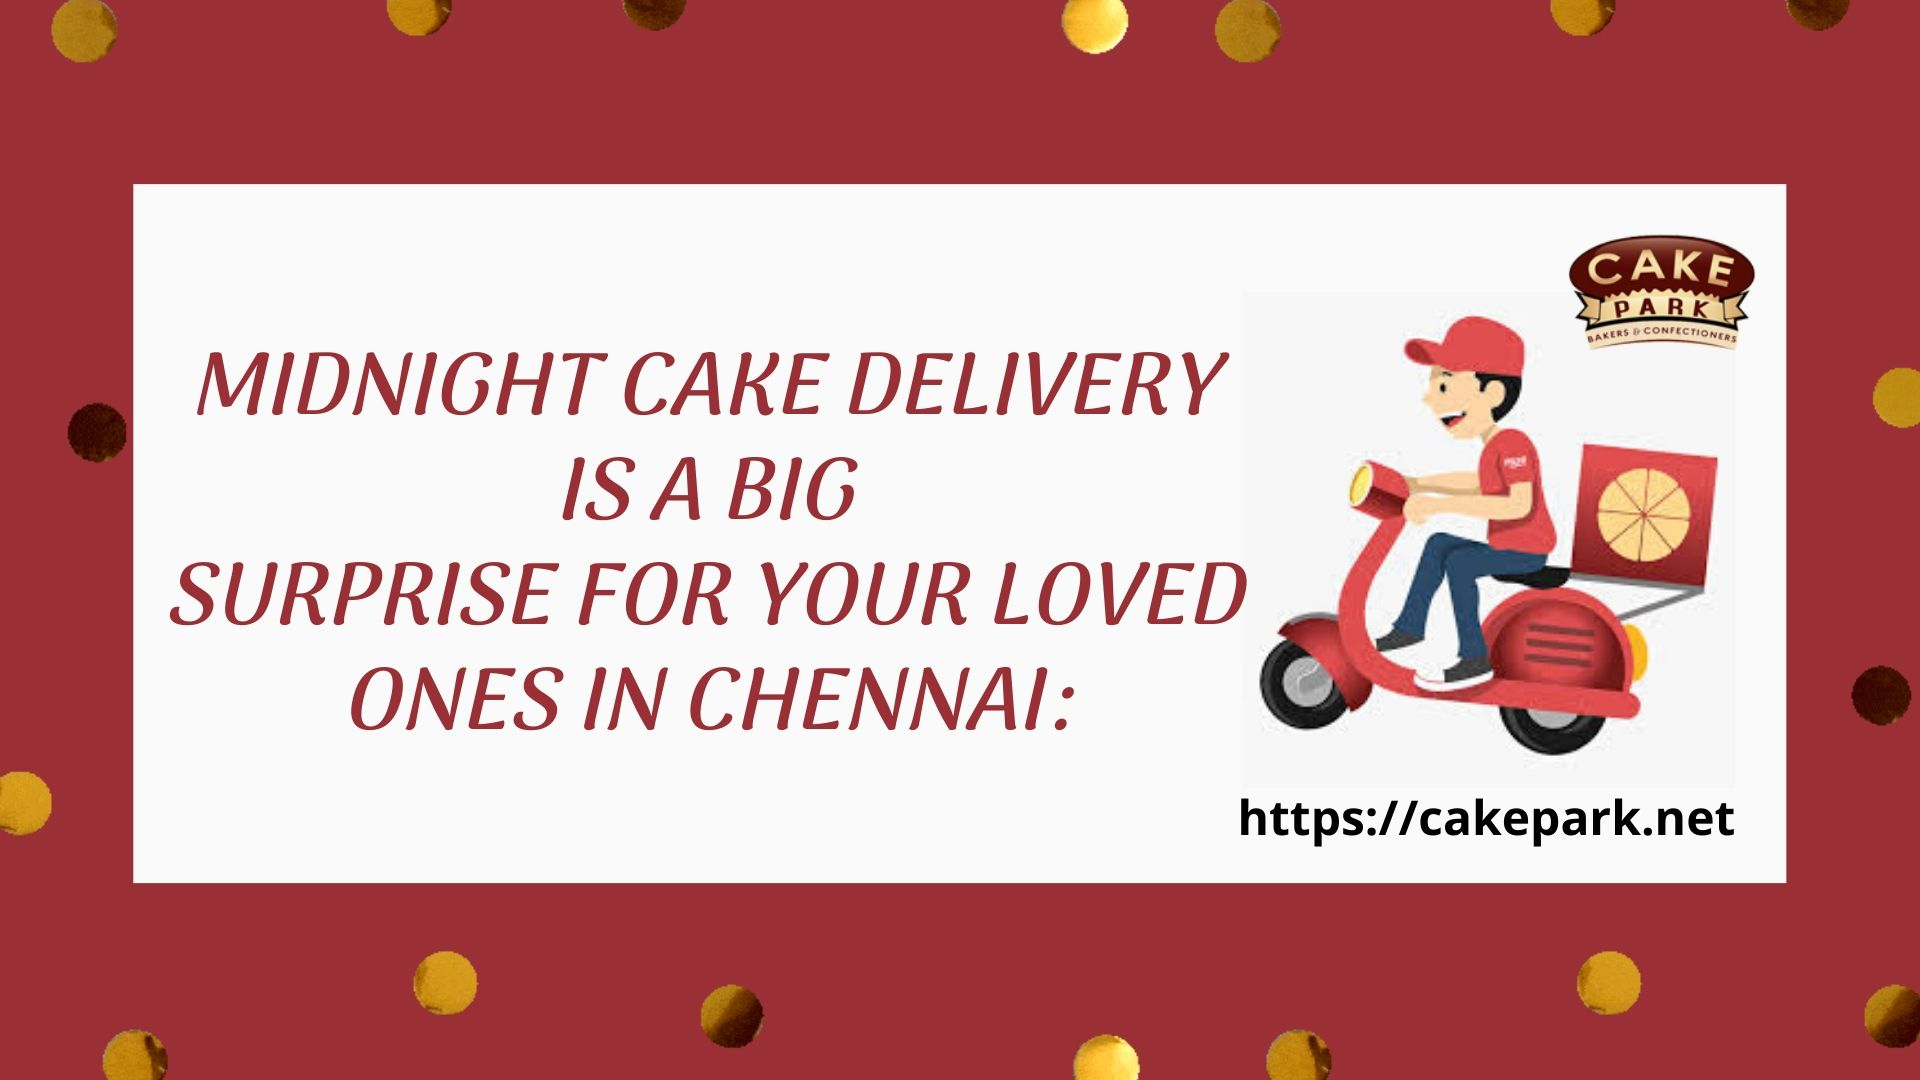 Midnight cake delivery in chennai